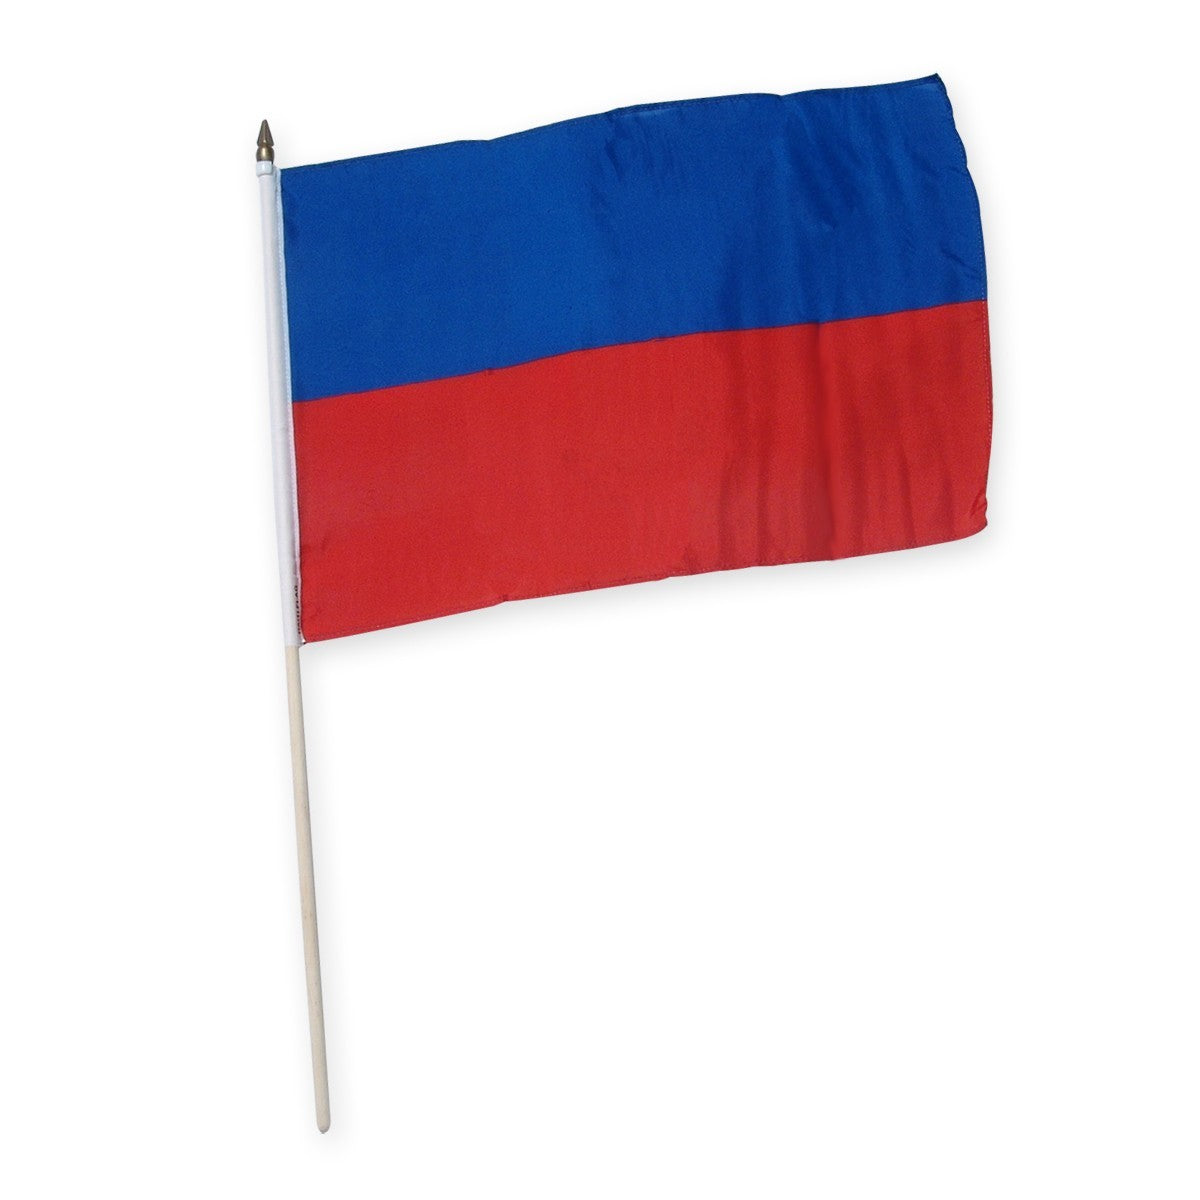 Haiti flags for sale 1-800 flags